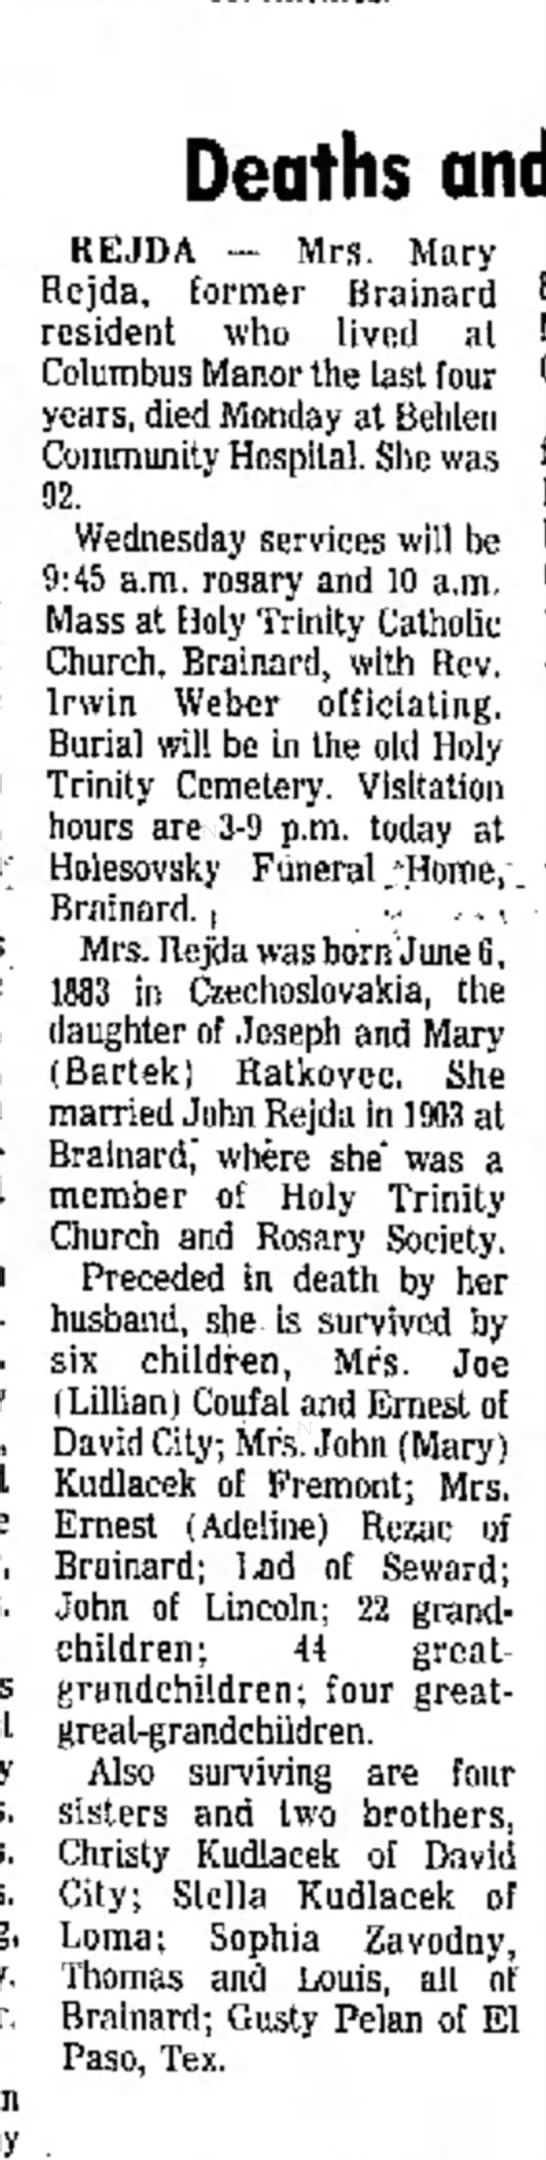 Mary Rejda obit - 20 Jan 1976, Columbus Telegram, Nebraska -